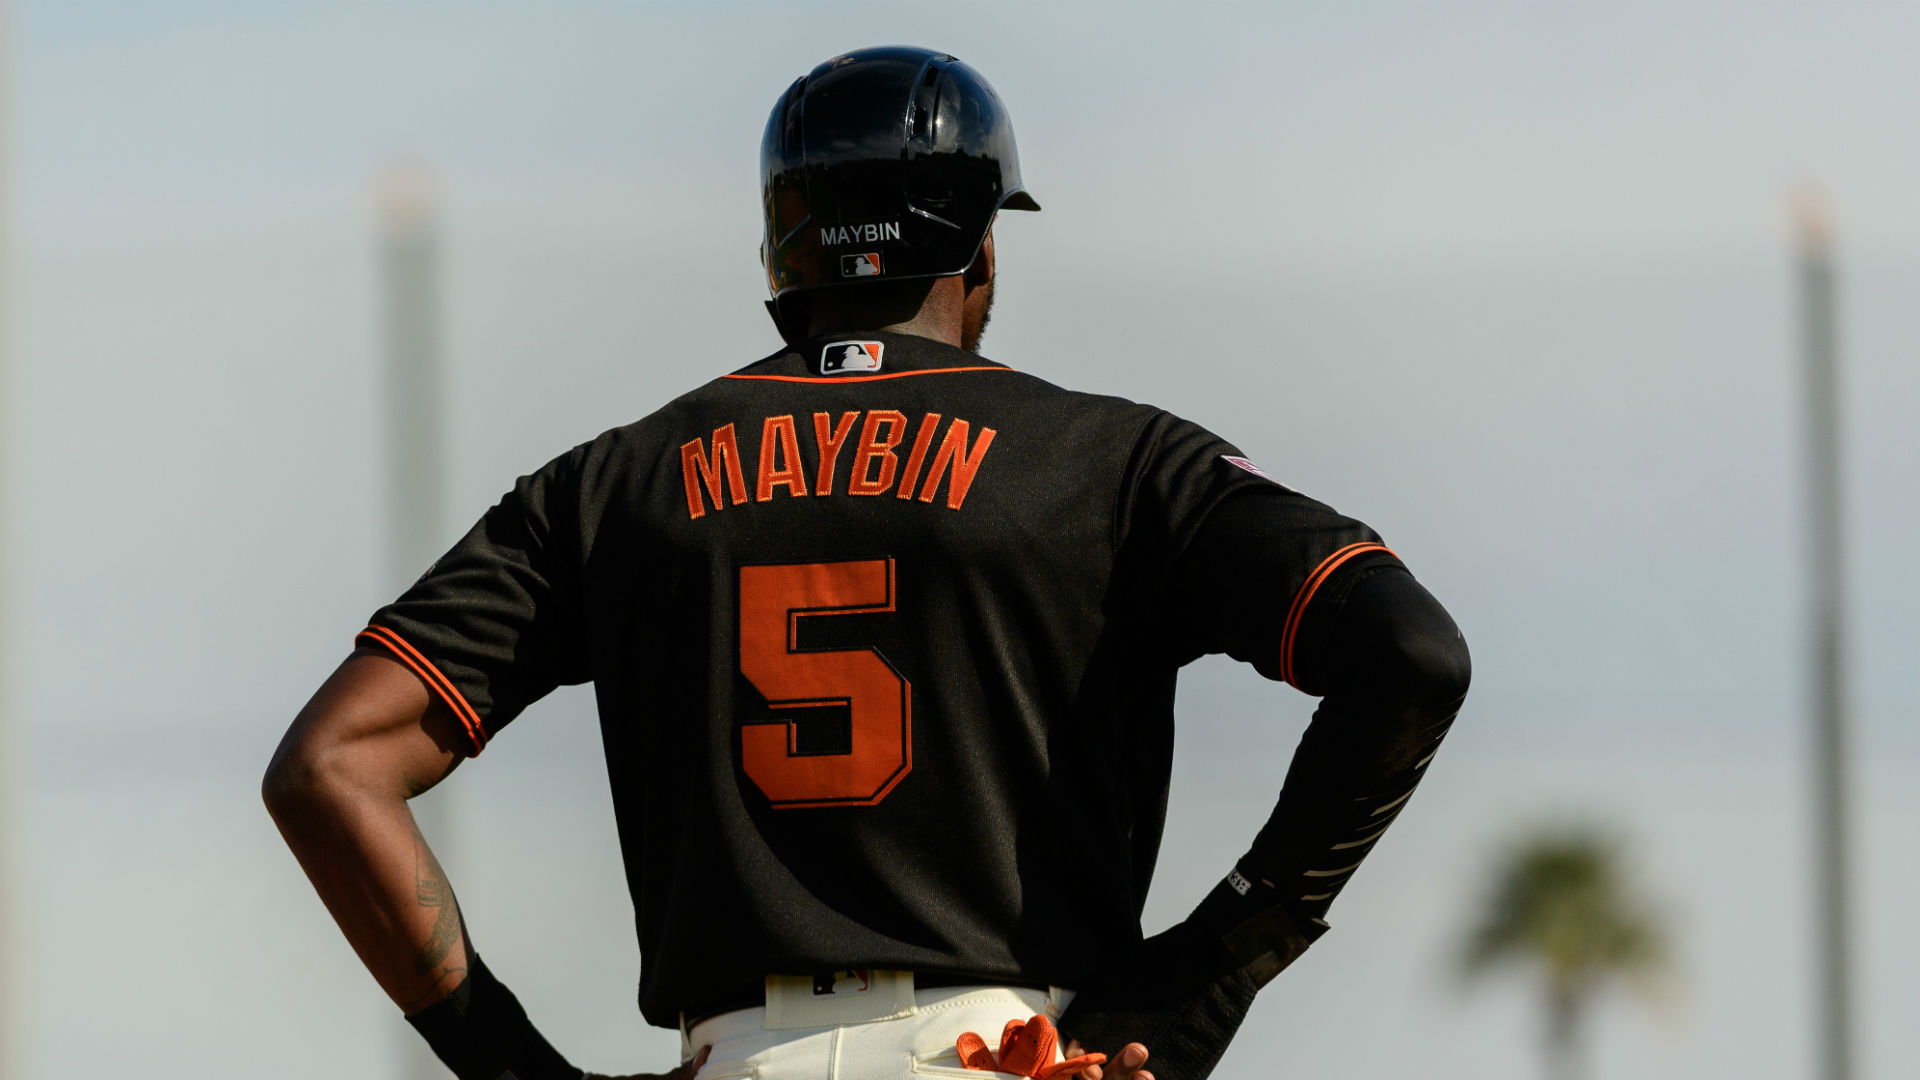 Giants outfielder Cameron Maybin arrested on DUI charge during spring training